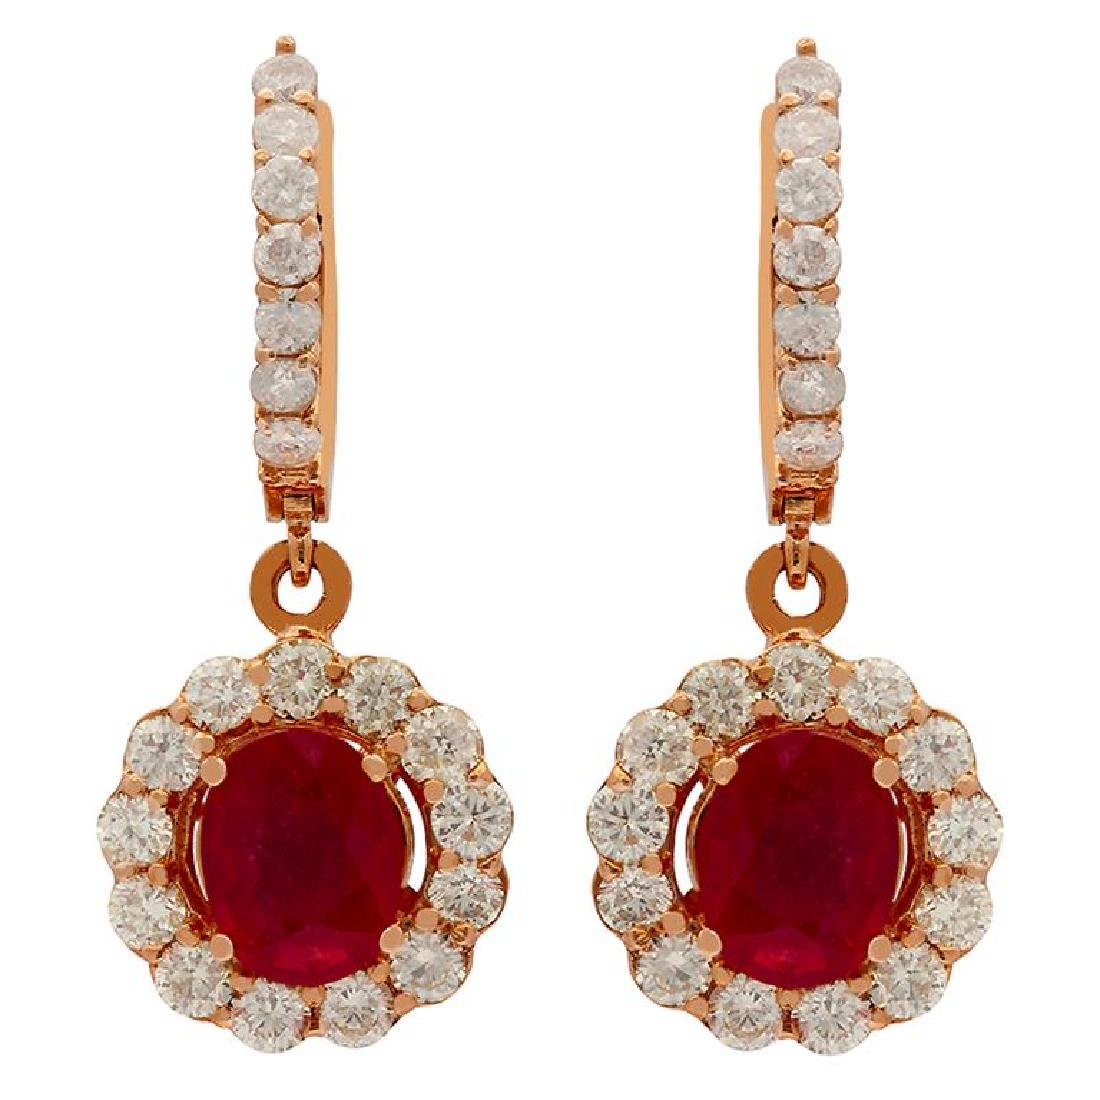 14k Rose Gold 2.79ct Ruby 2.05ct Diamond Earrings